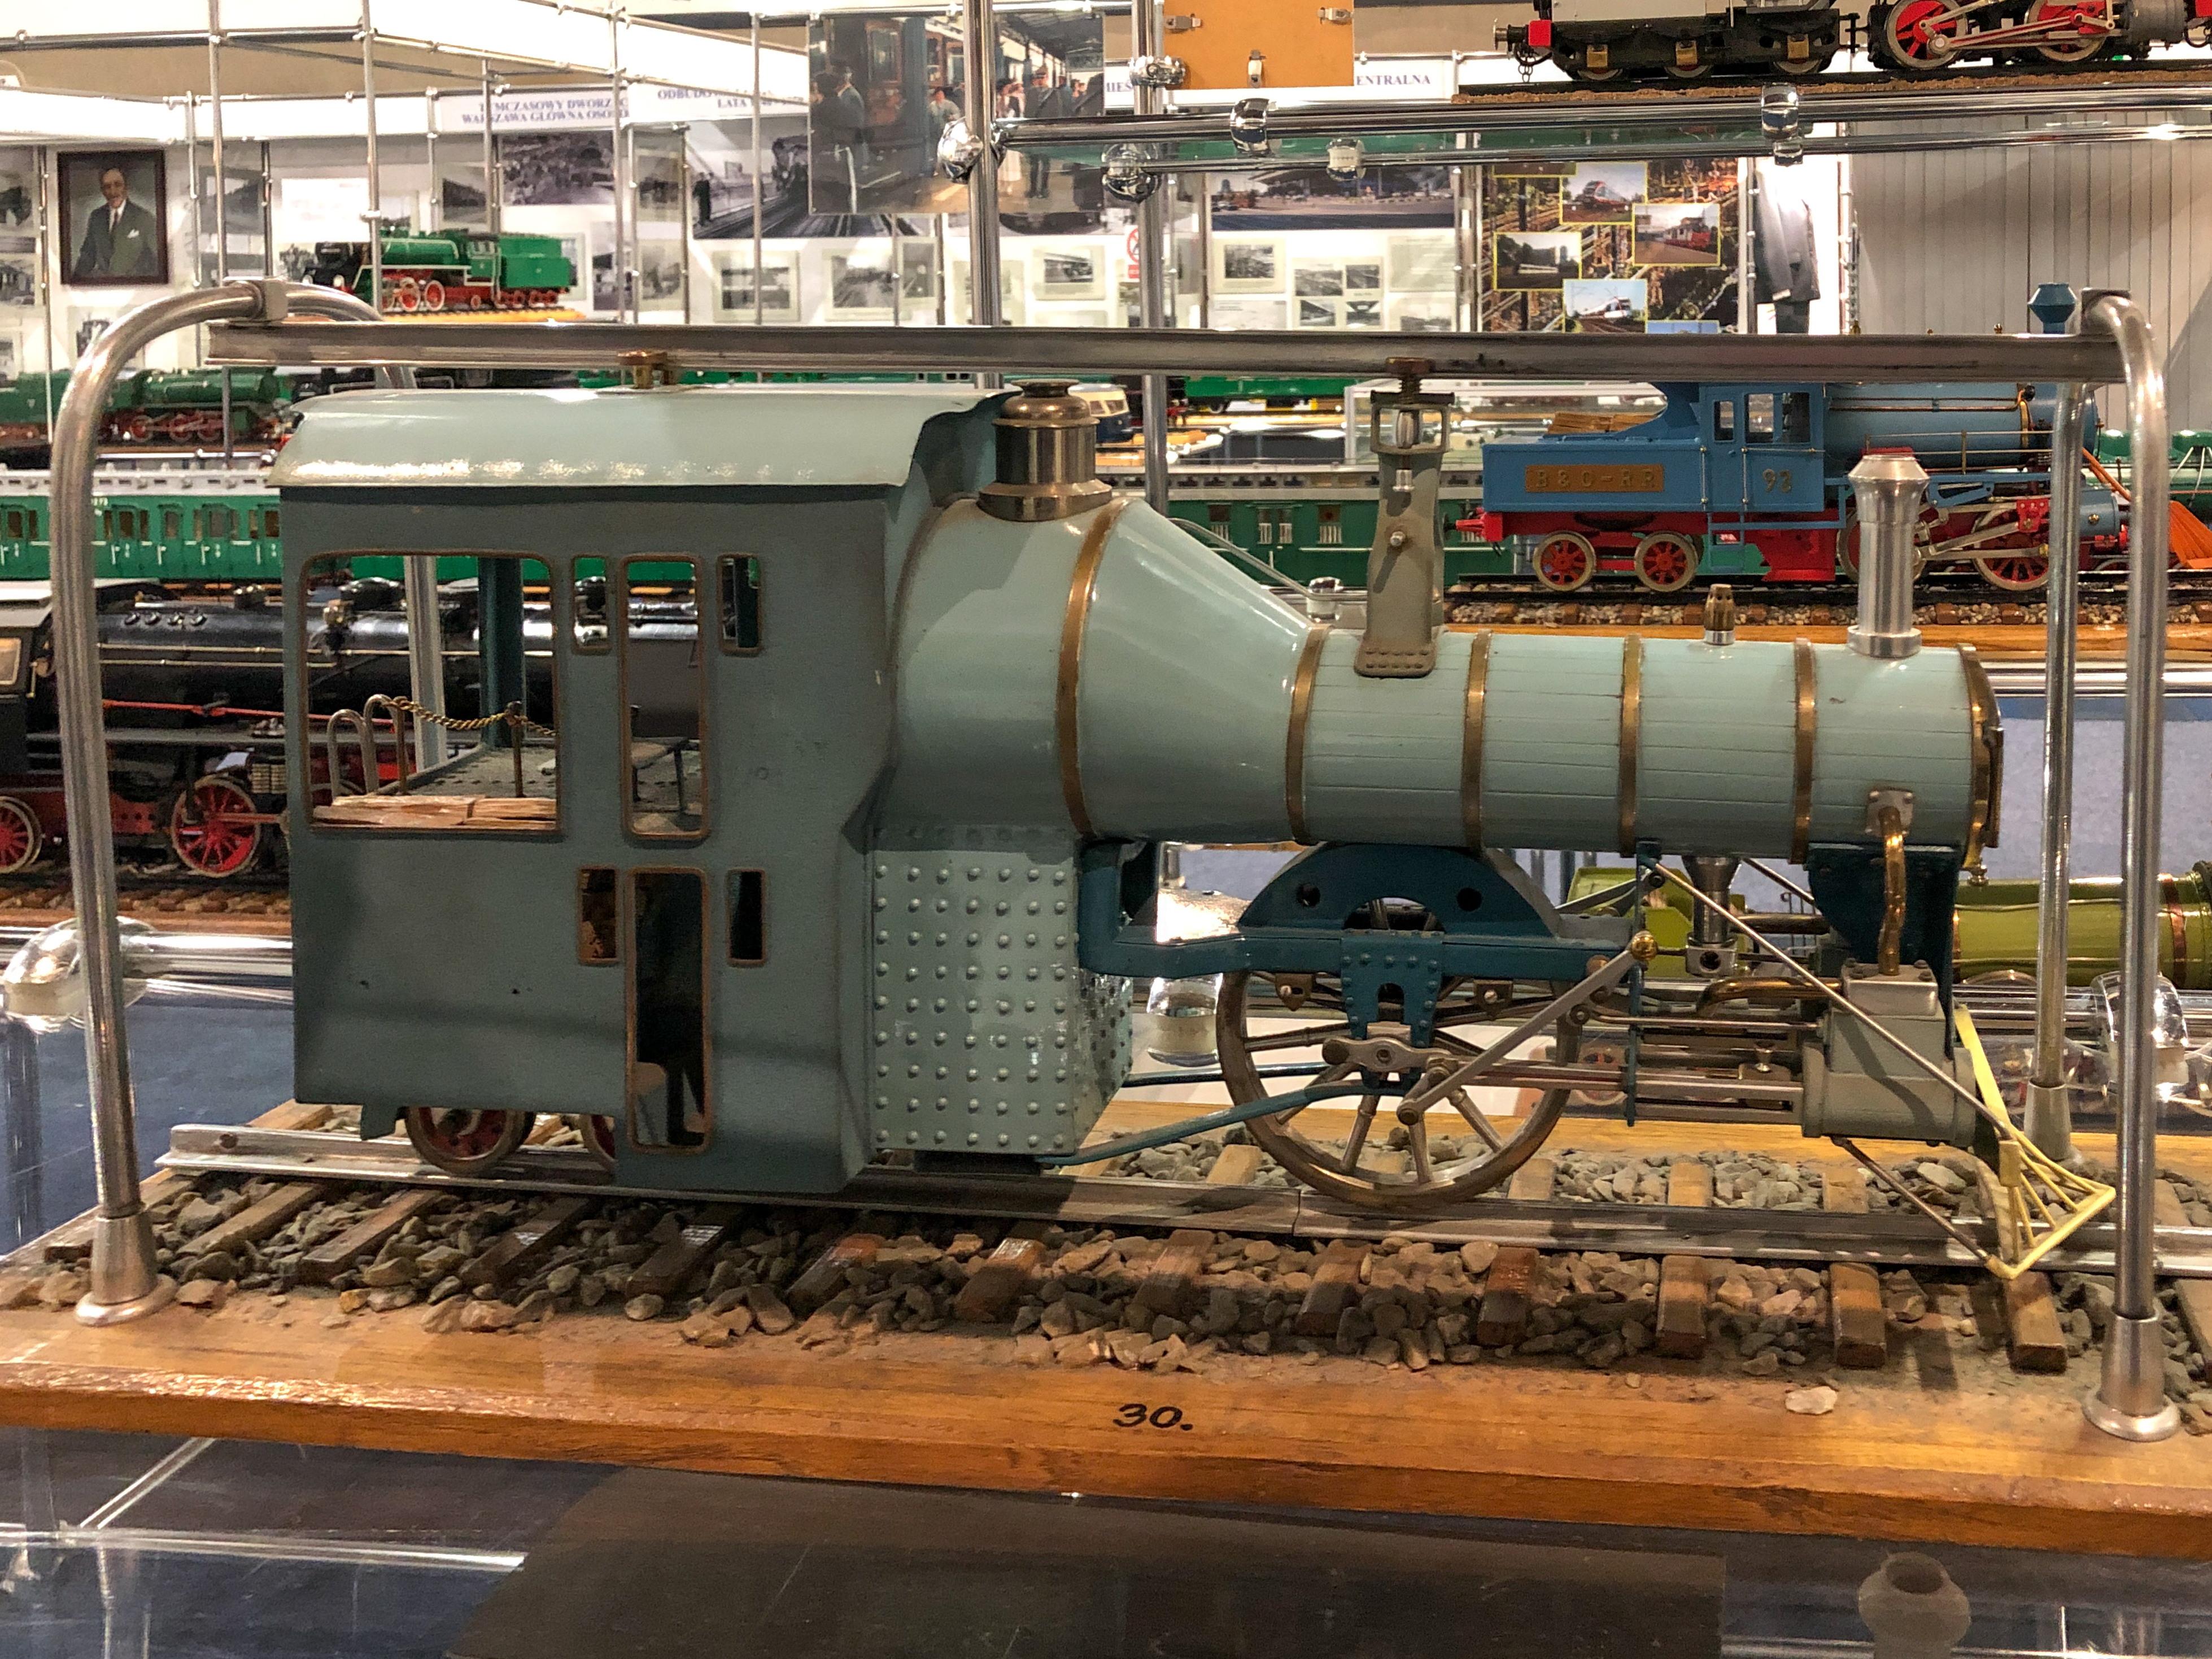 A model of a steam locomotive running on a single rail below, and supported by one above. The front is to the right.